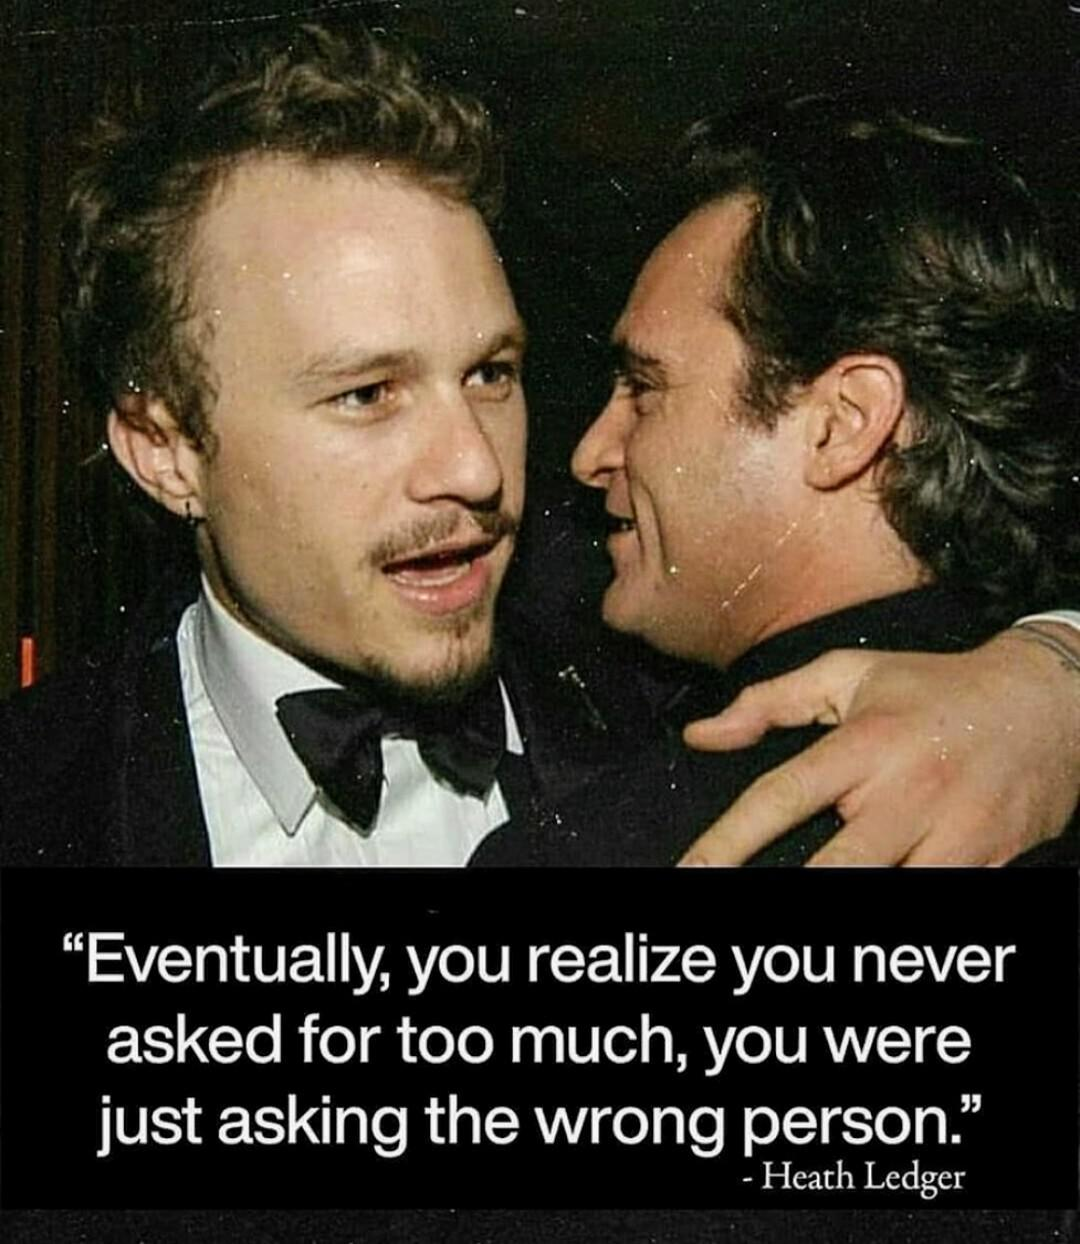 """Eventually, you realize you never asked for too much, you were just asking the wrong person."" – Heath Ledger [1080 * 1244]"